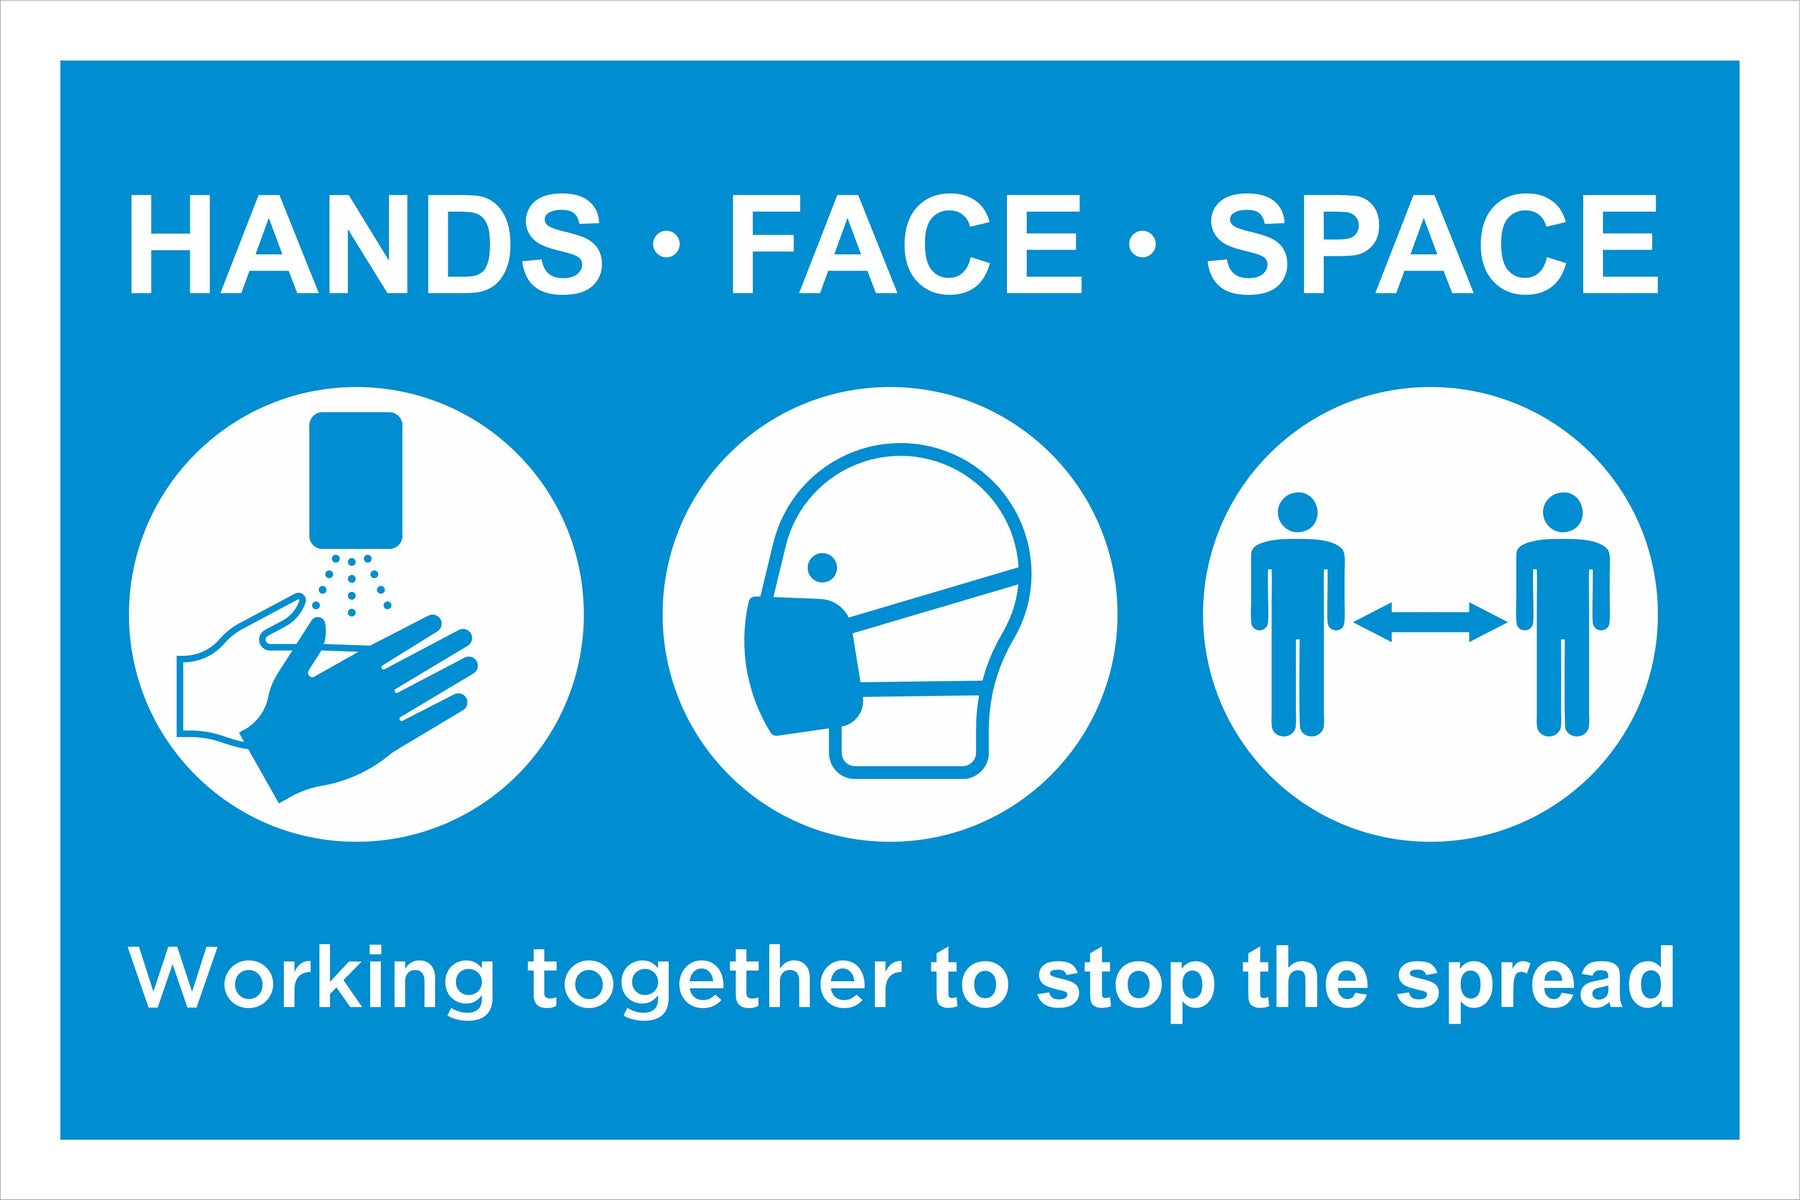 HANDS FACE SPACE SOCIAL DISTANCING SAFETY SIGN